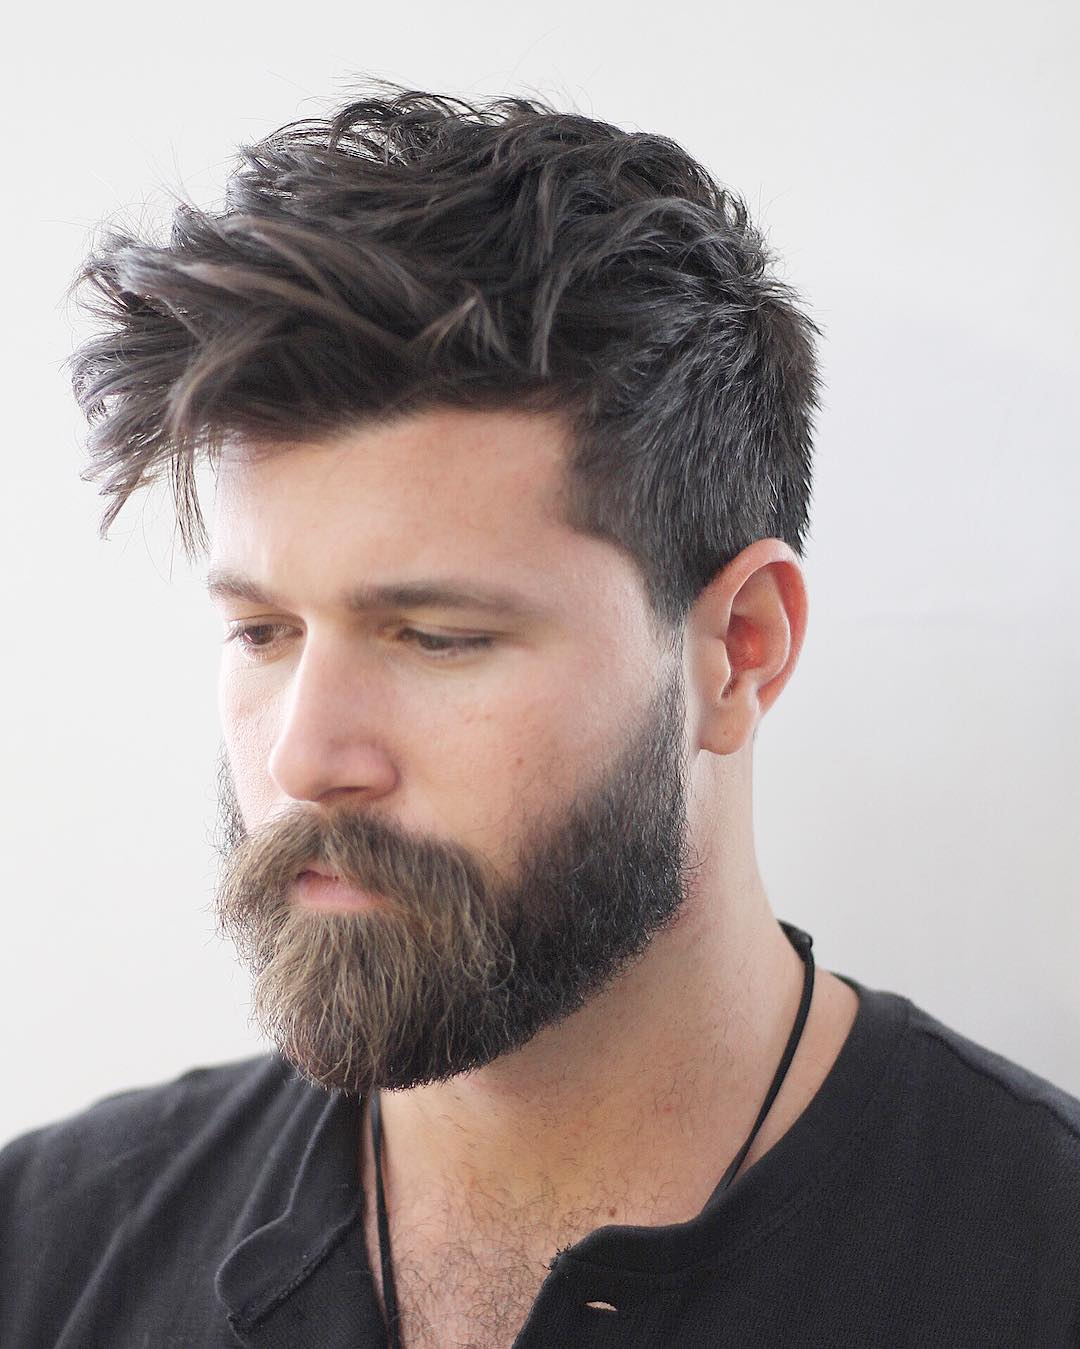 101 Hair Cut Styles New Styles And Trends 2021